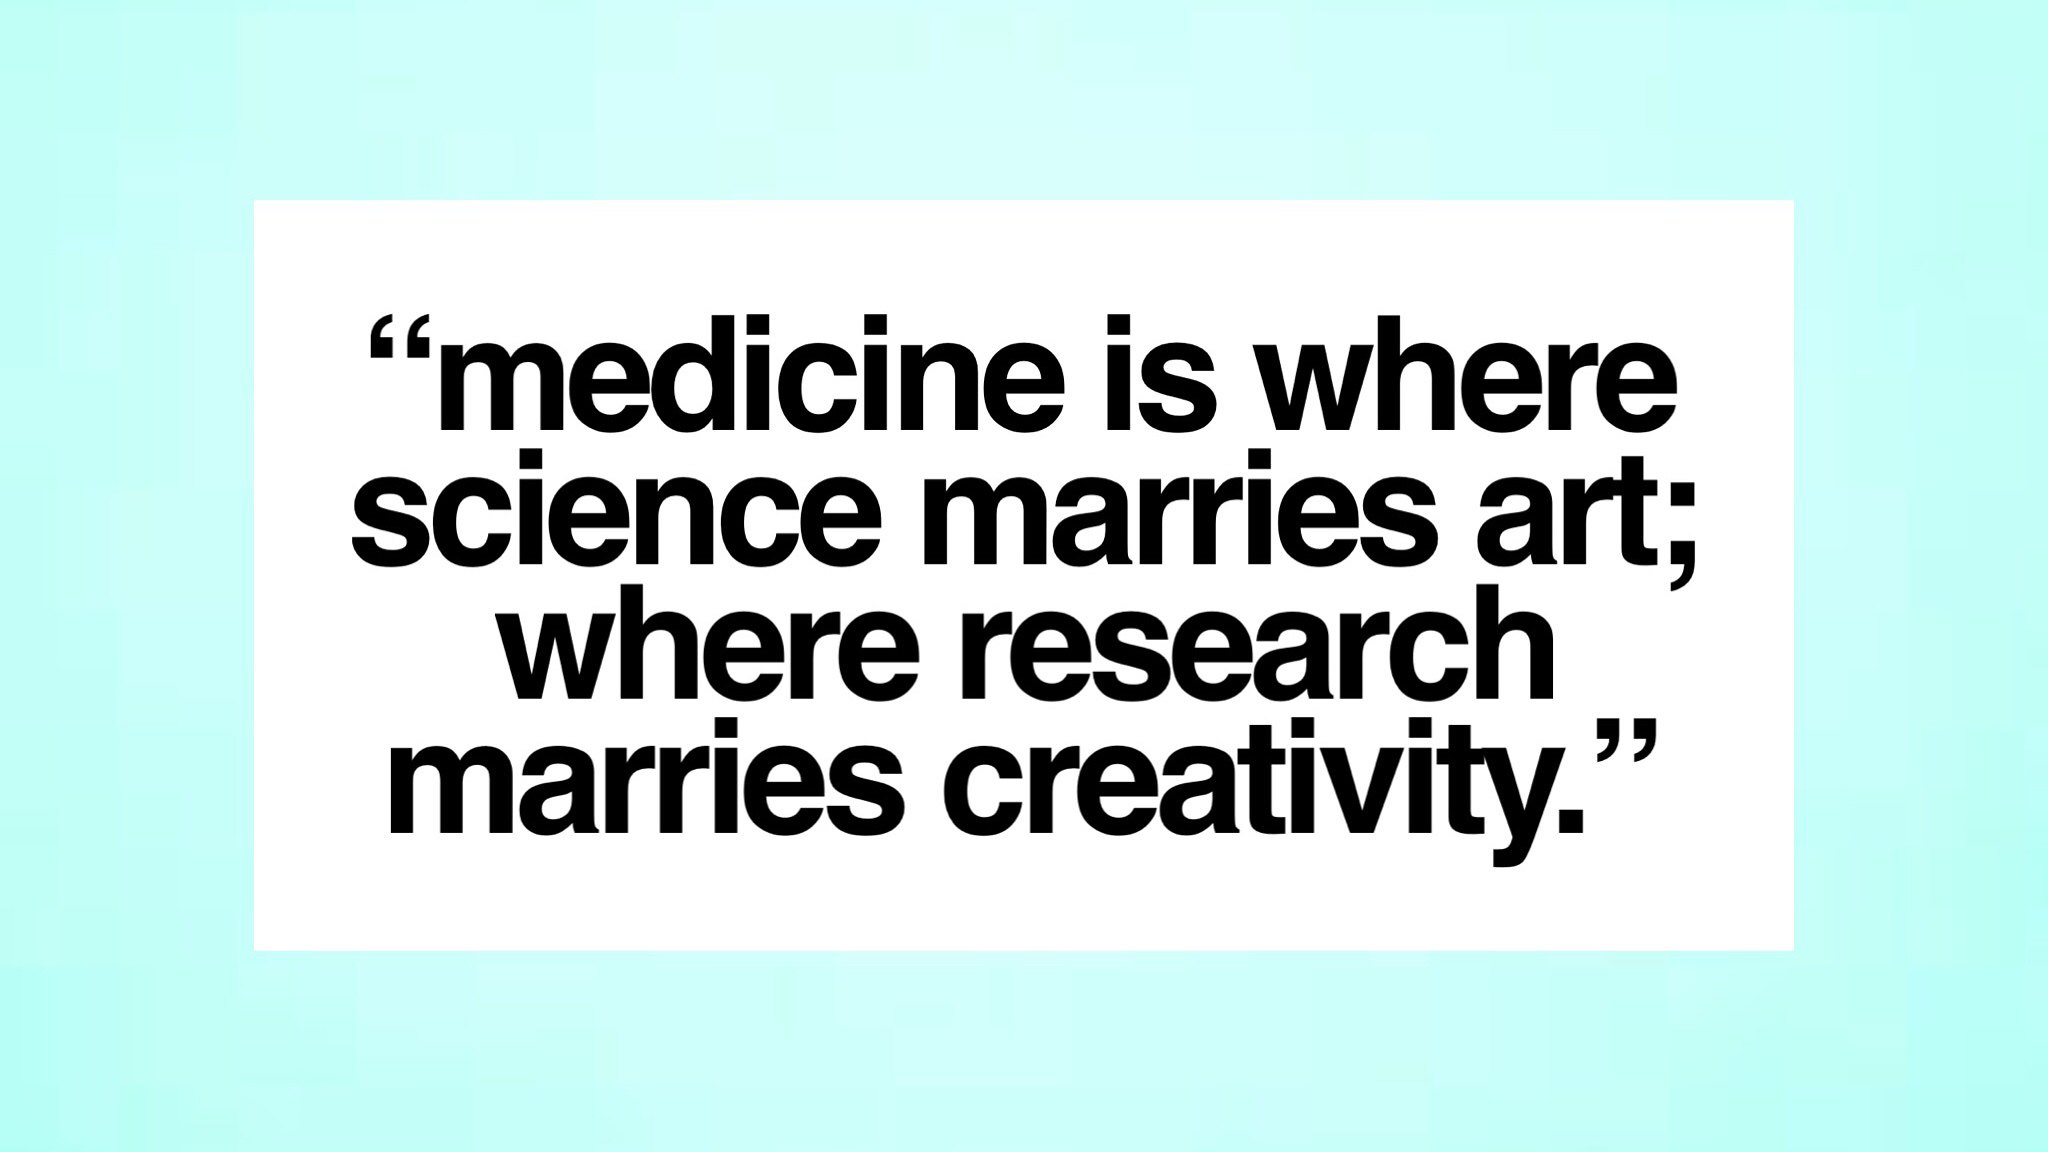 Medicine is where science marries art; where research marries creativity.